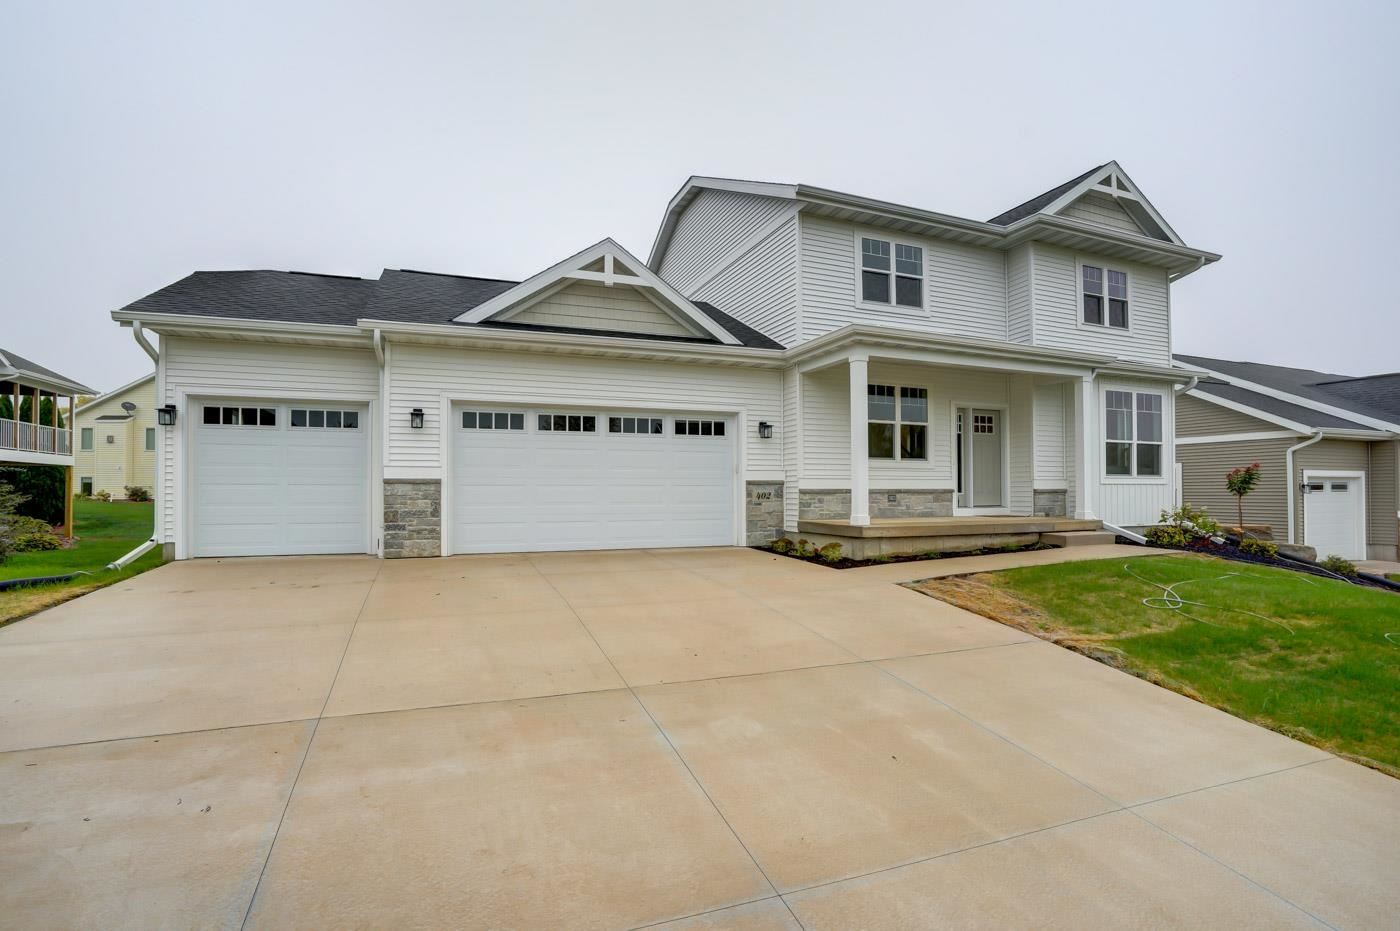 Photo for 402 Molly Ln, Cottage Grove, WI 53527 (MLS # 1919744)